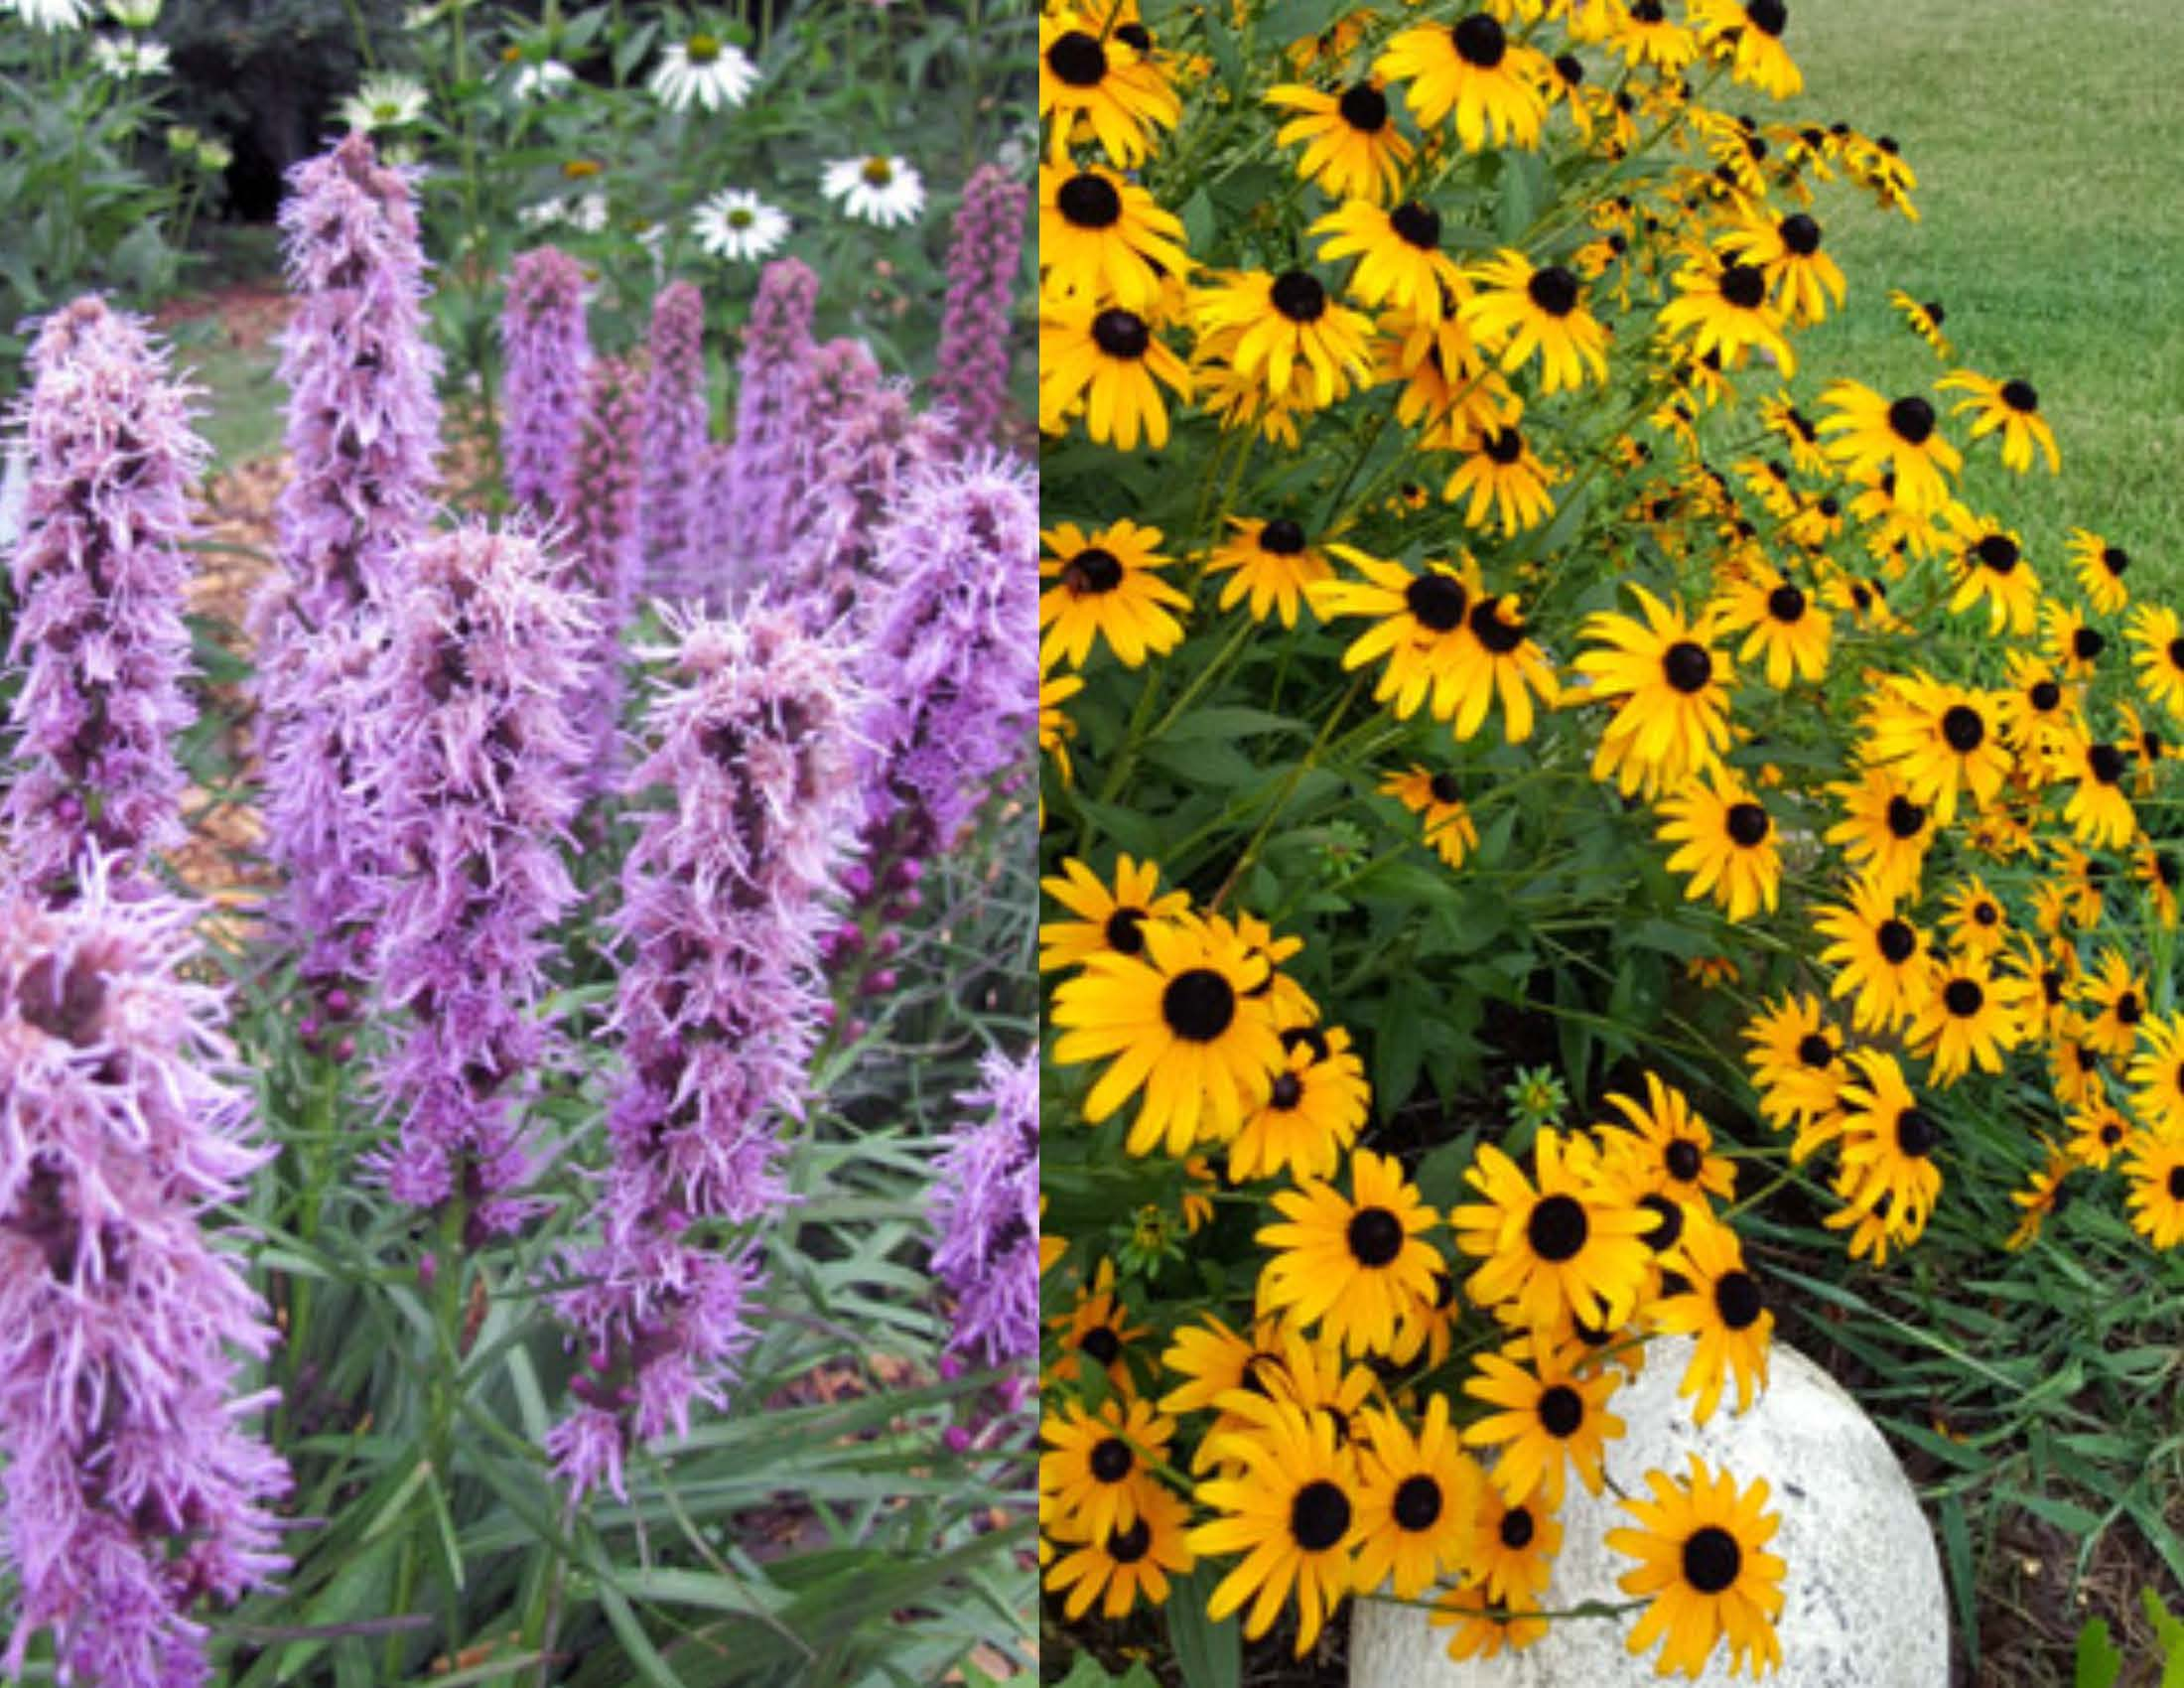 Liatris and Black-eyed Susans_Paige Nugent